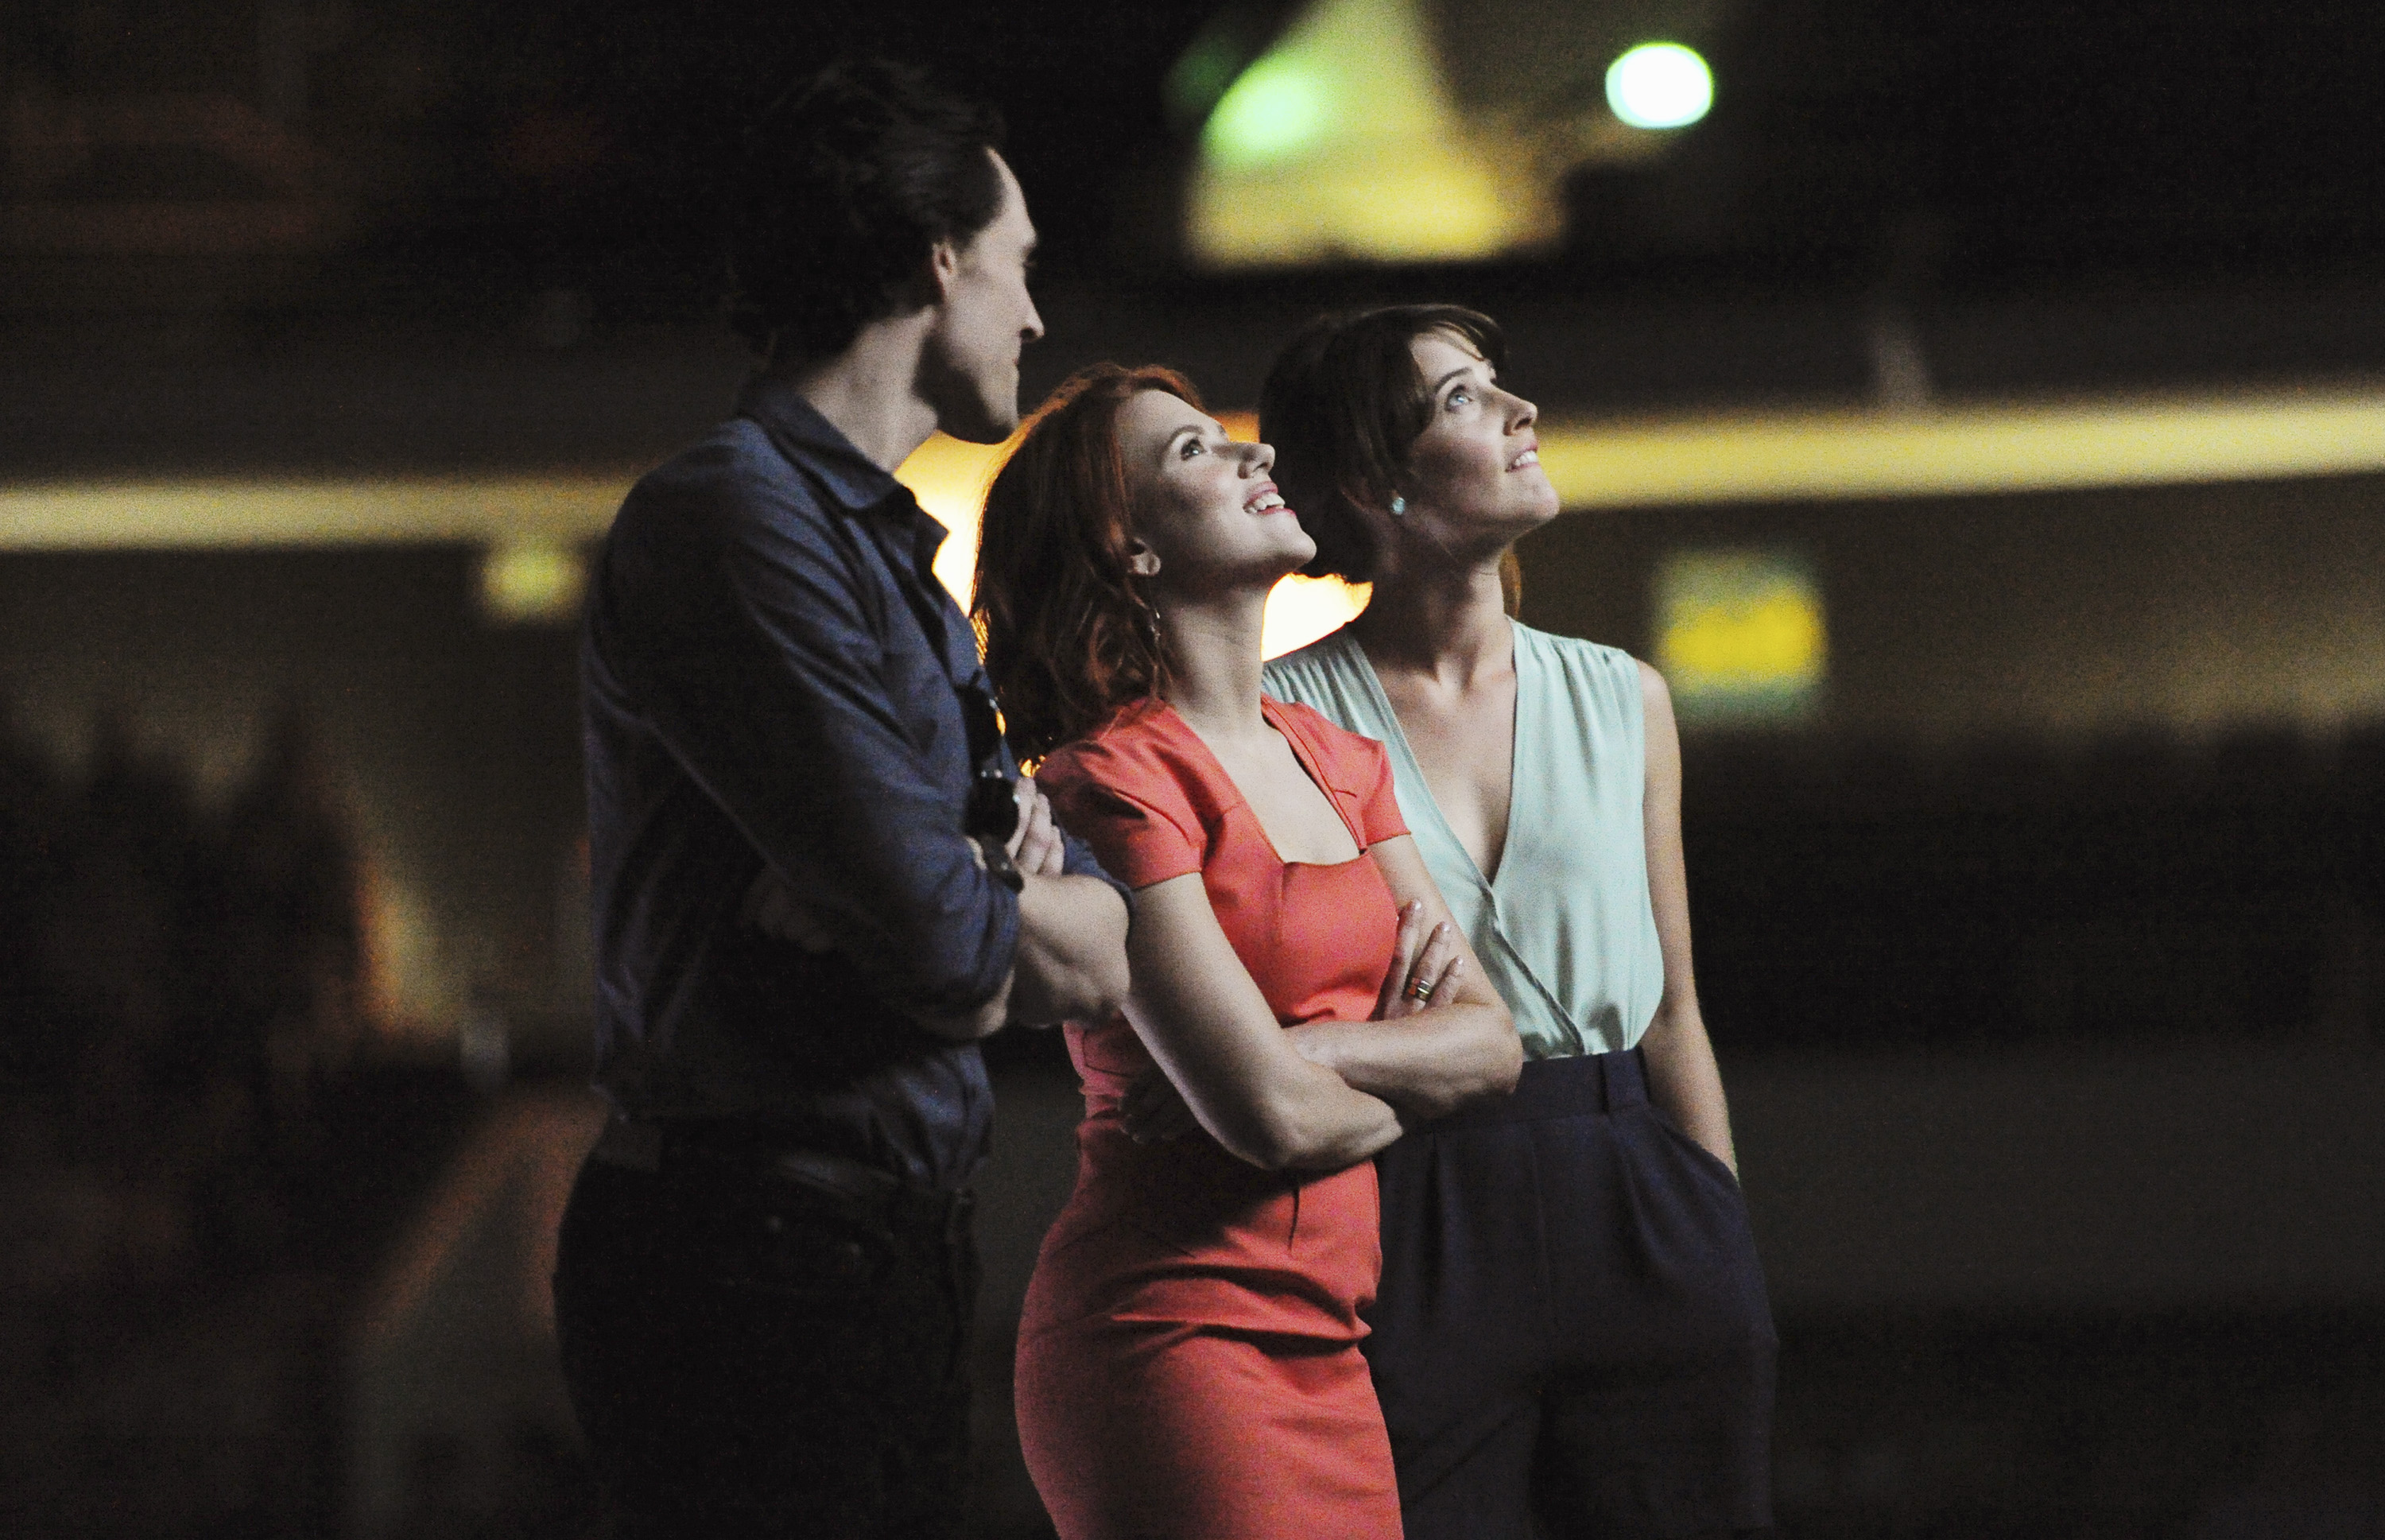 Scarlett Johansson watches a preview of The Avengers with Tom Hiddleston and Cobie Smulders.